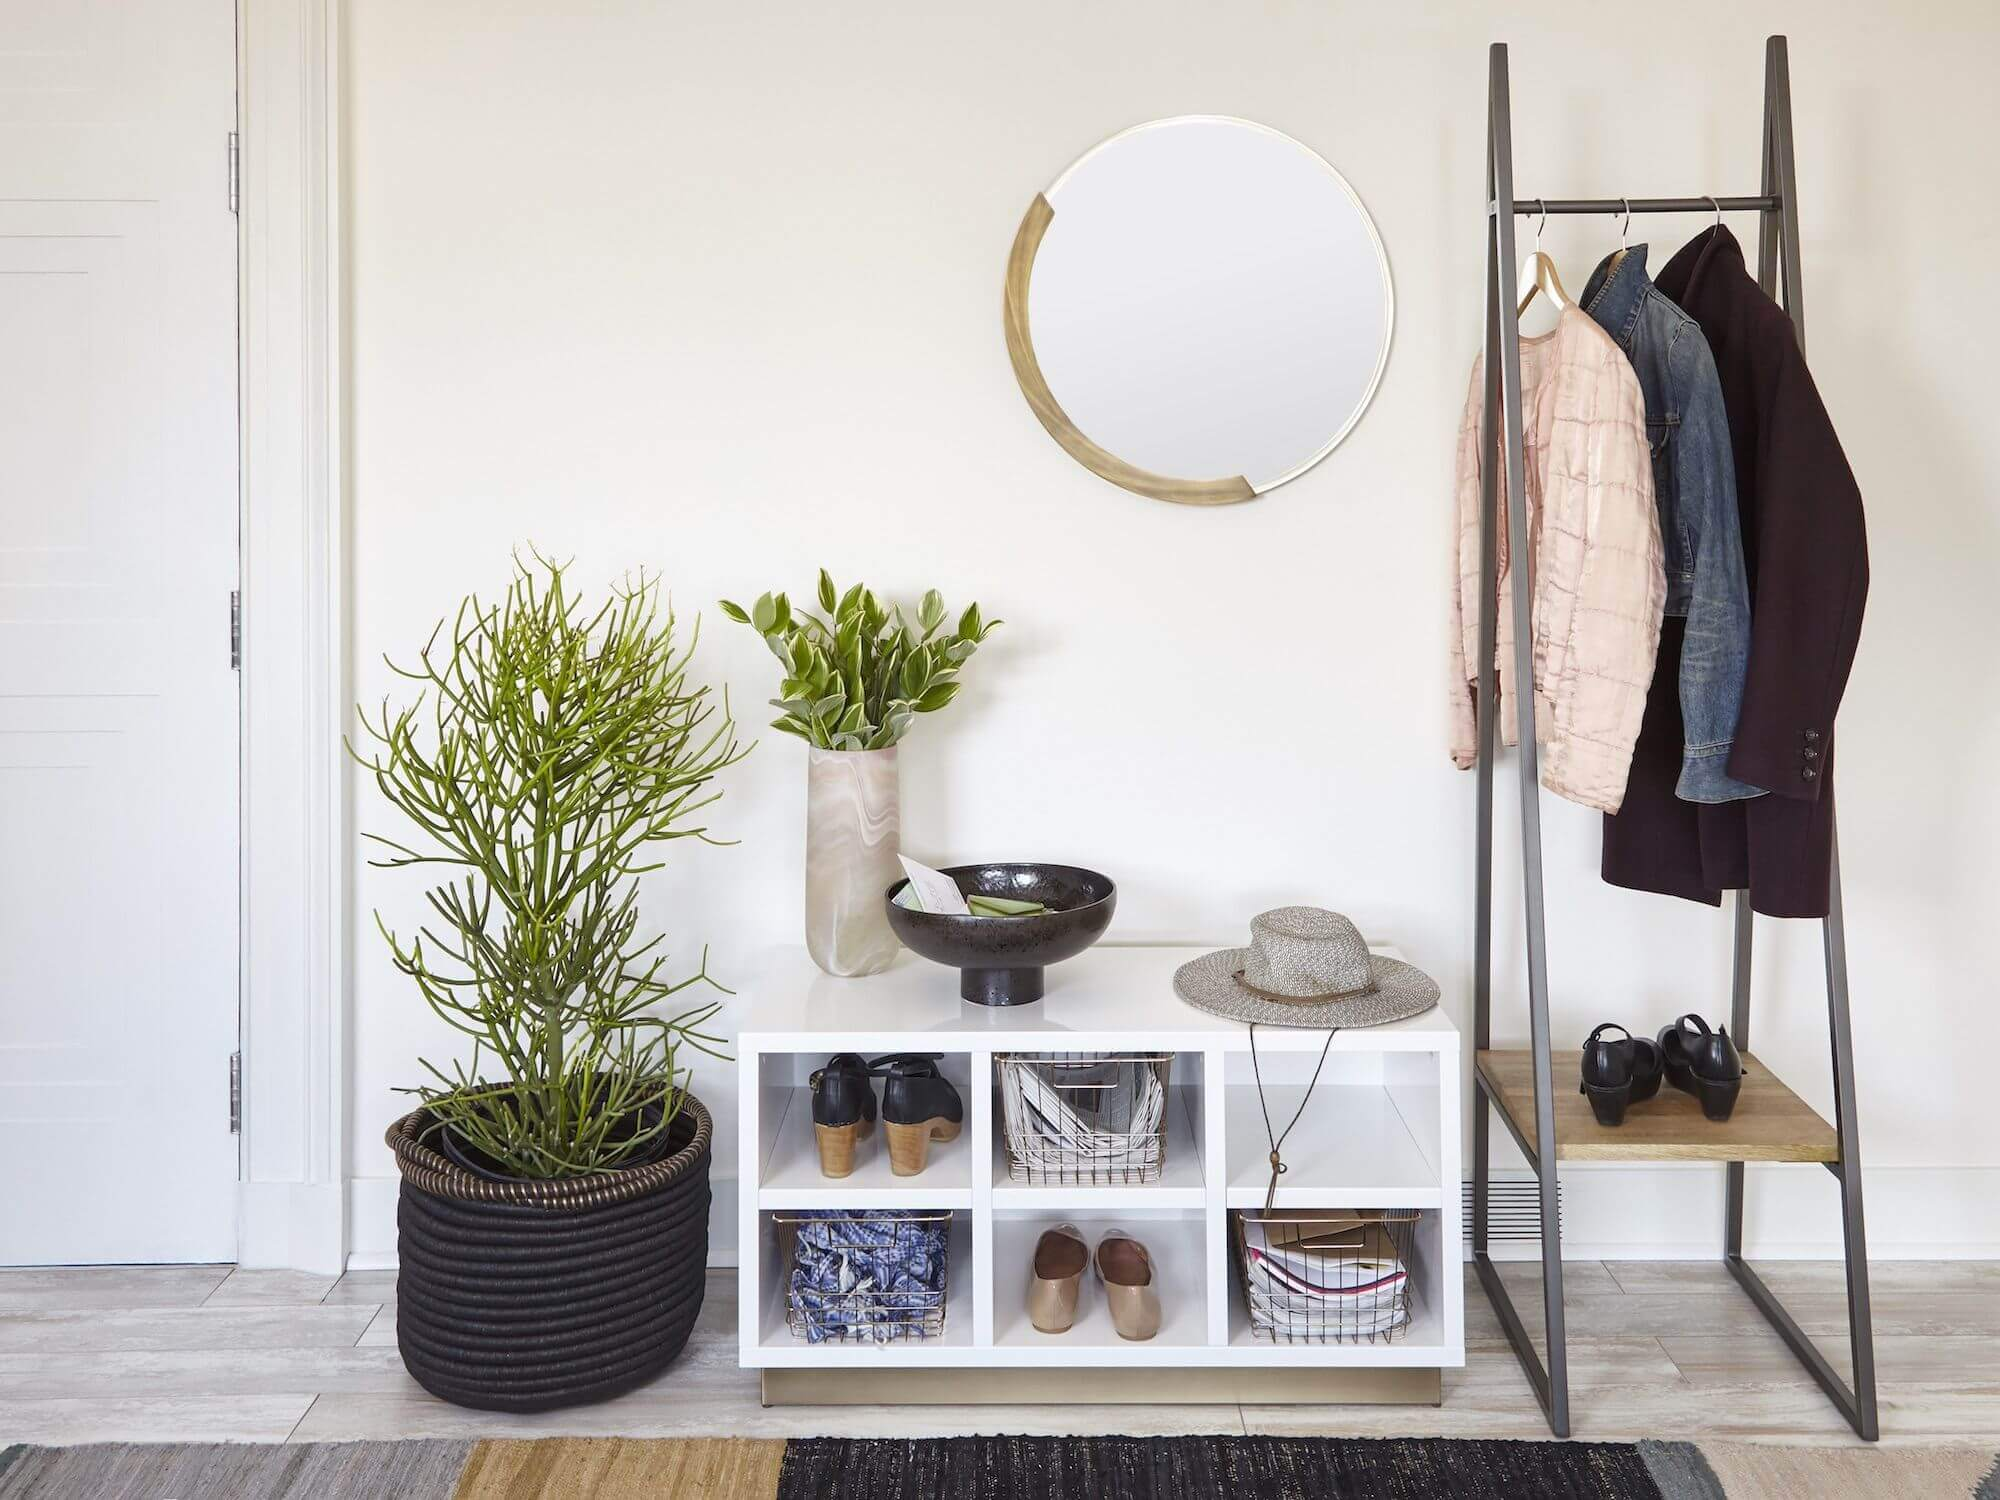 Buy-Double-Duty-Furniture-Tricks-To-Maximize-Your-Outdoor-Space